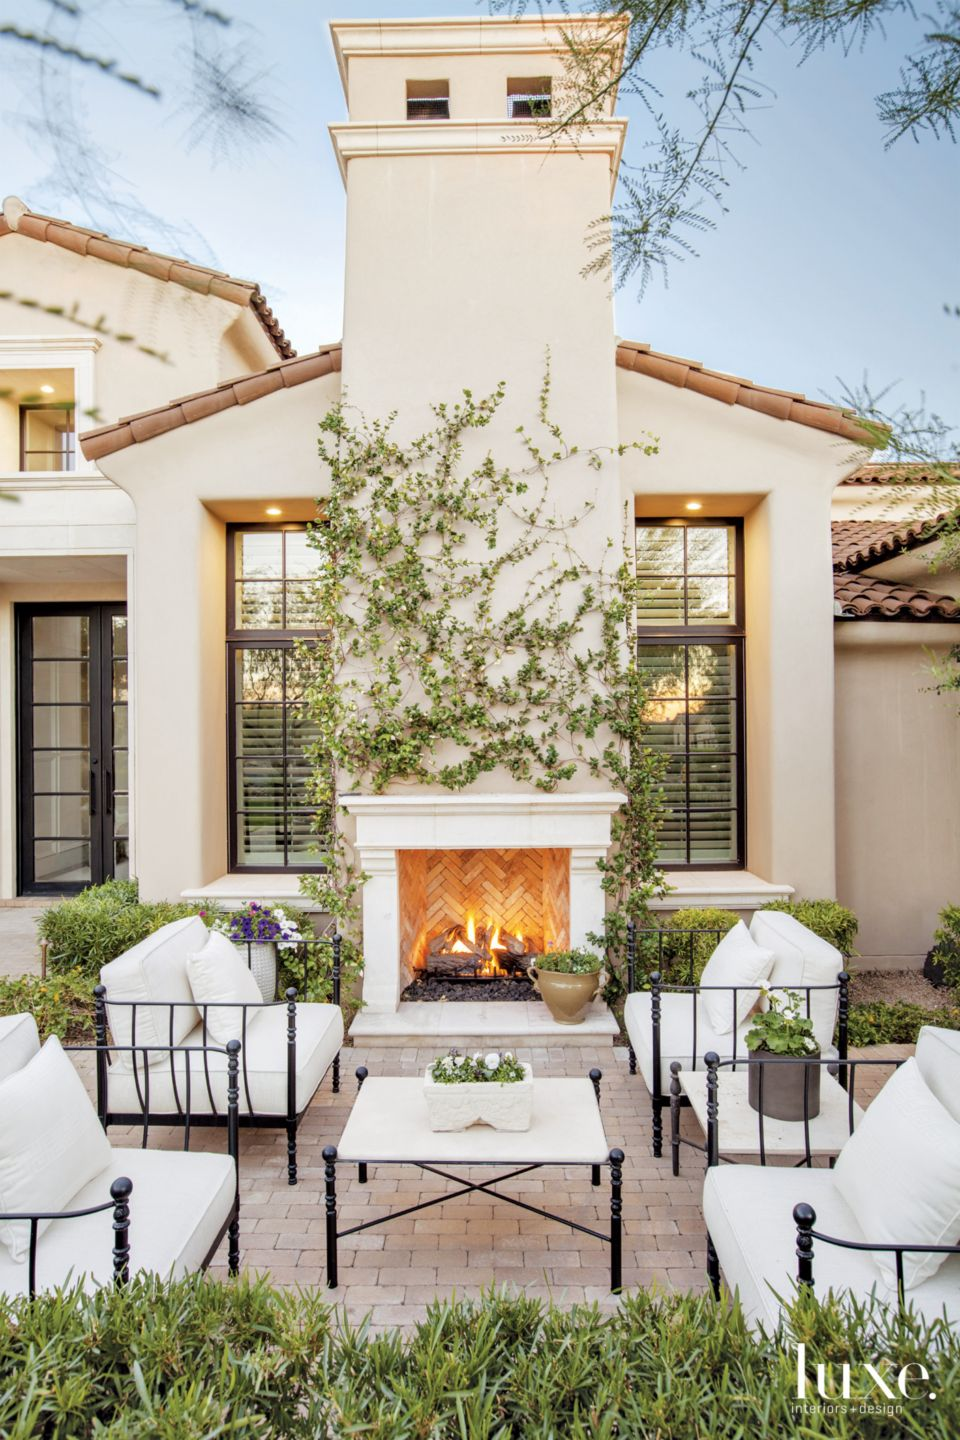 Mediterranean Cream Exterior with Outdoor Seating Area